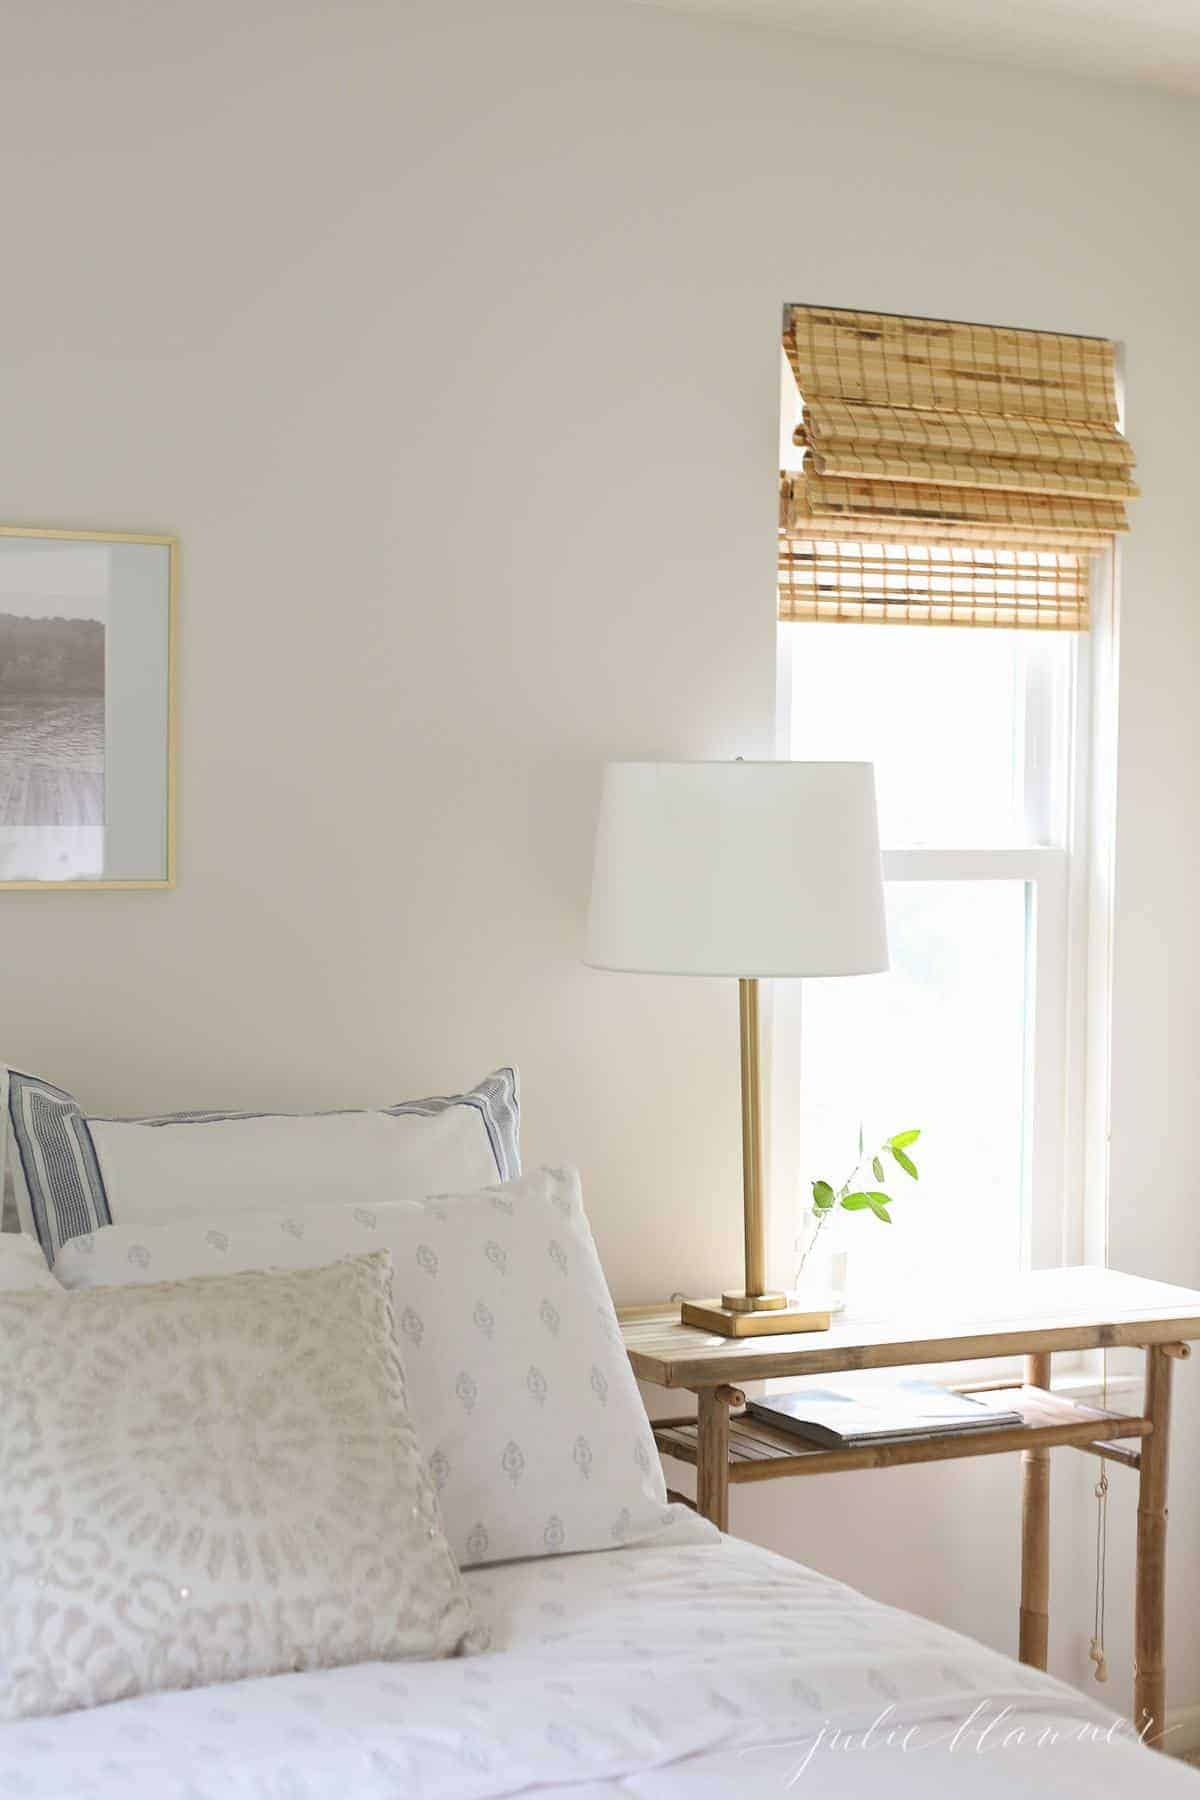 A white bedroom A living room with white furniture with a cream eggshell paint on the walls.